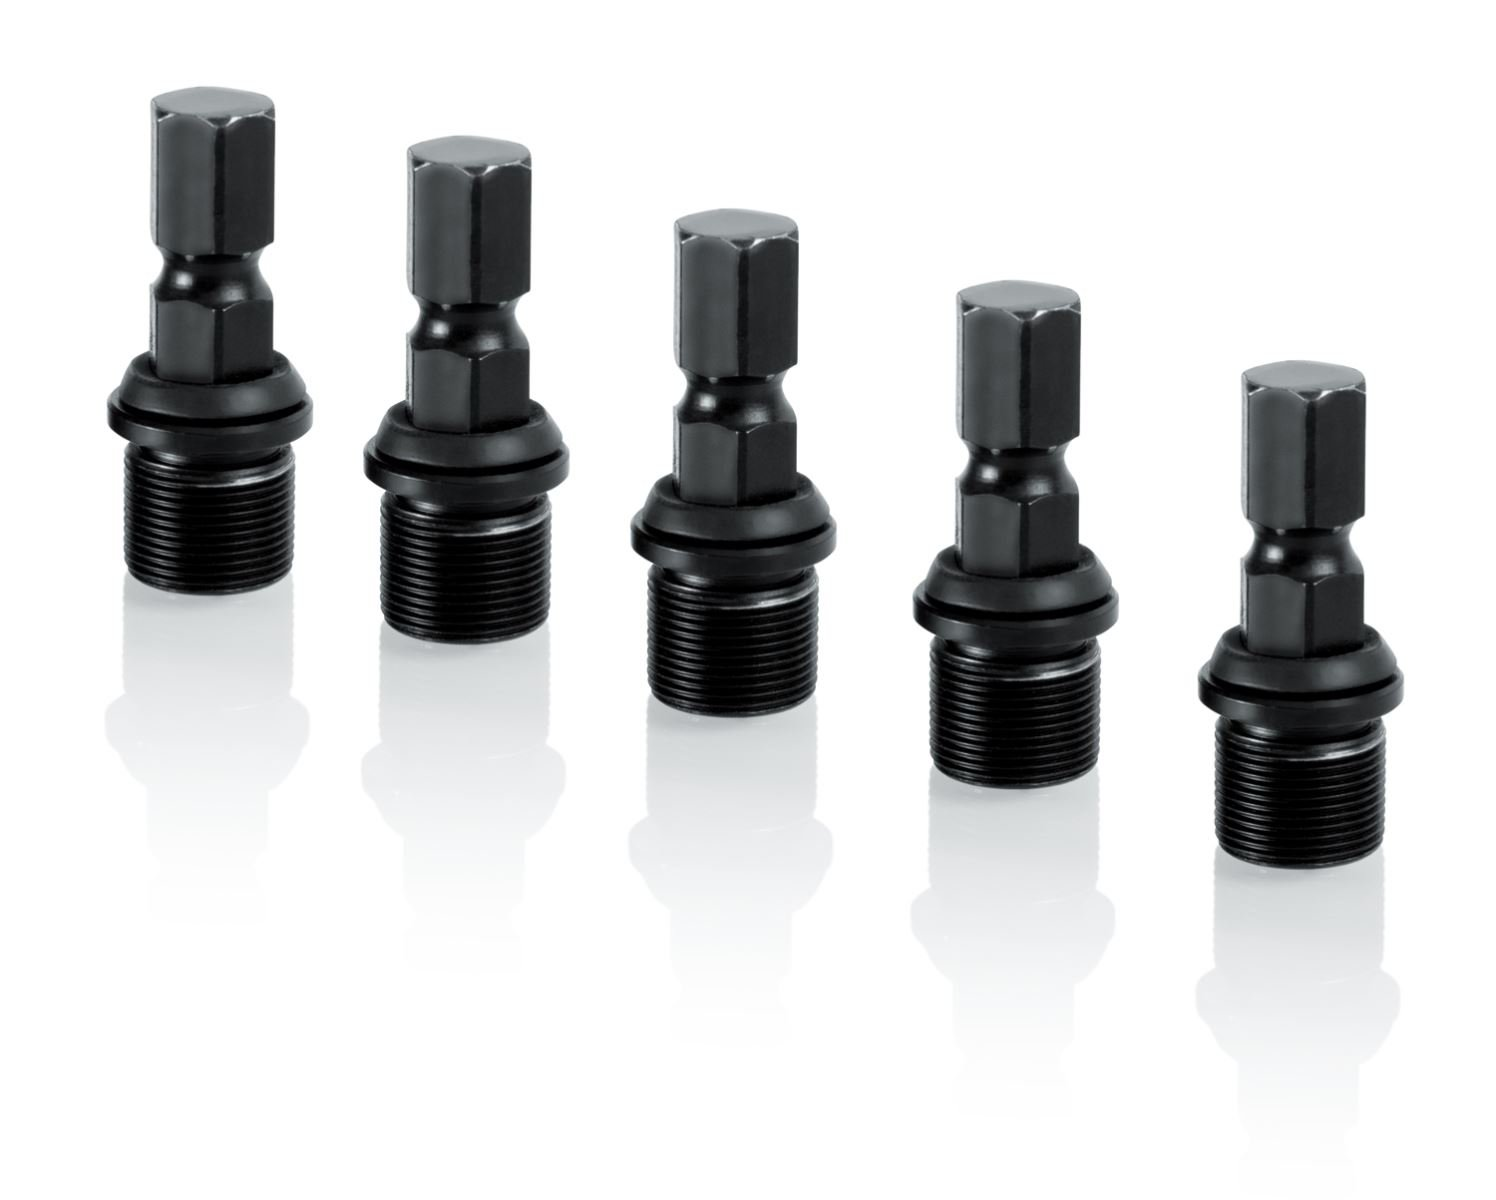 5-Pack of Mic Adapters for GFW-MIC-QRTOP